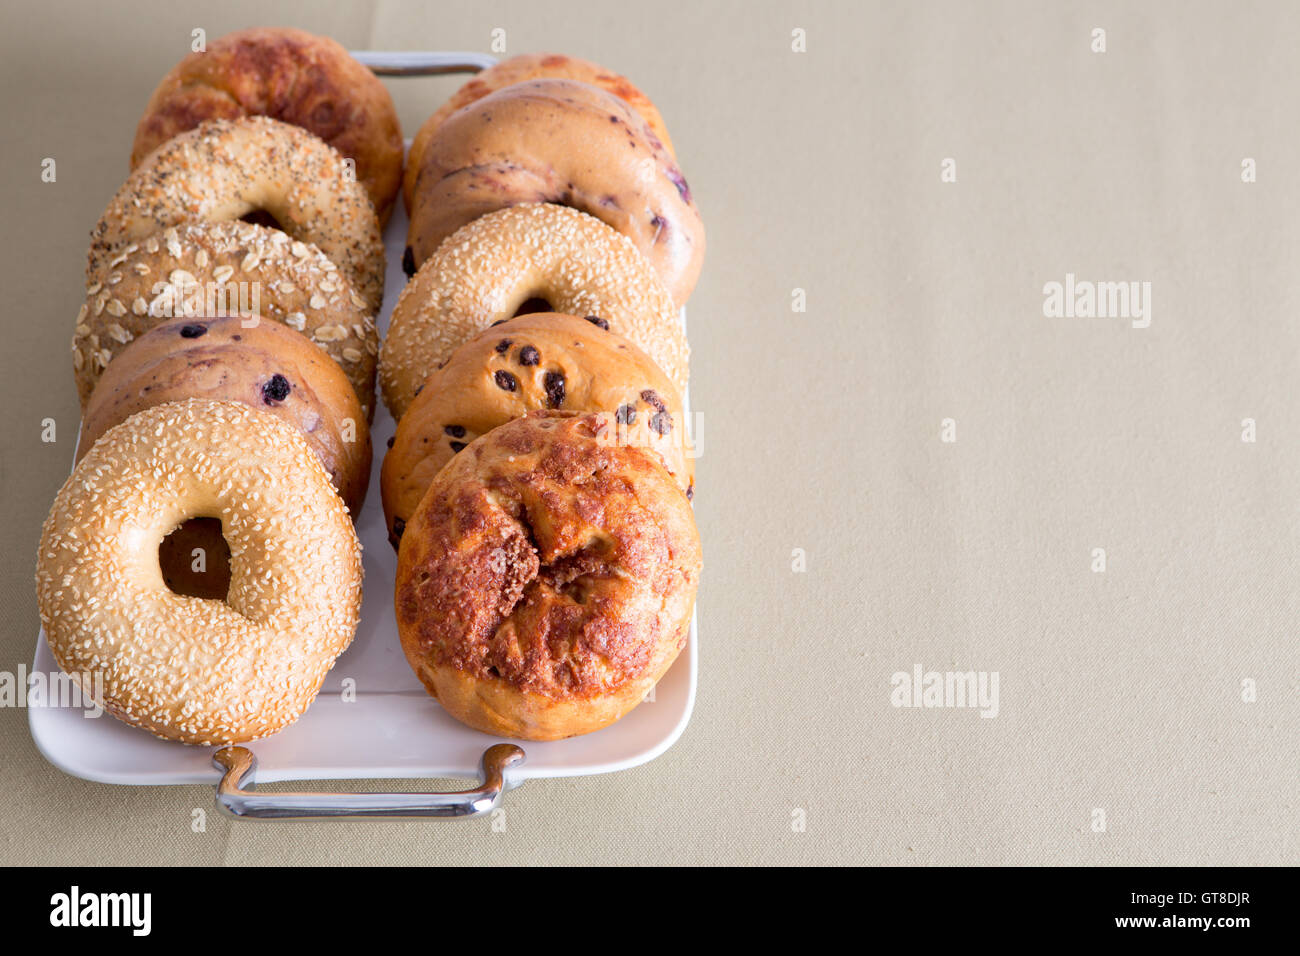 Fresh Bagel Breads, Good for After Office Meeting Snacks, Prepared on a White Tray Placed on a Table with Copy Space. - Stock Image